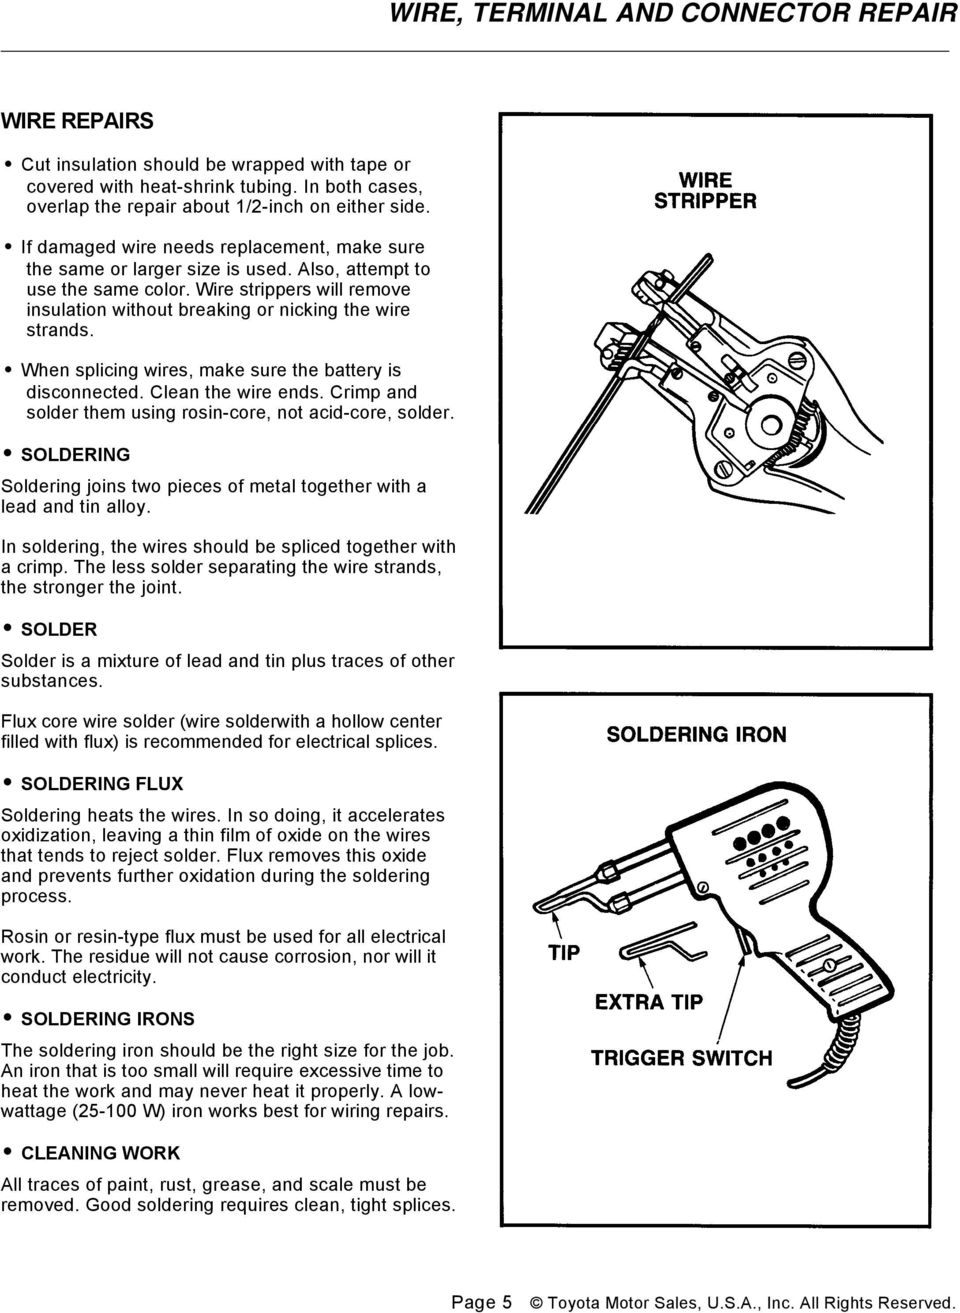 Wire Terminal And Connector Repair Conductors Pdf 2004 Honda Odyssey Wiring Harness Melted When Splicing Wires Make Sure The Battery Is Disconnected Clean Ends